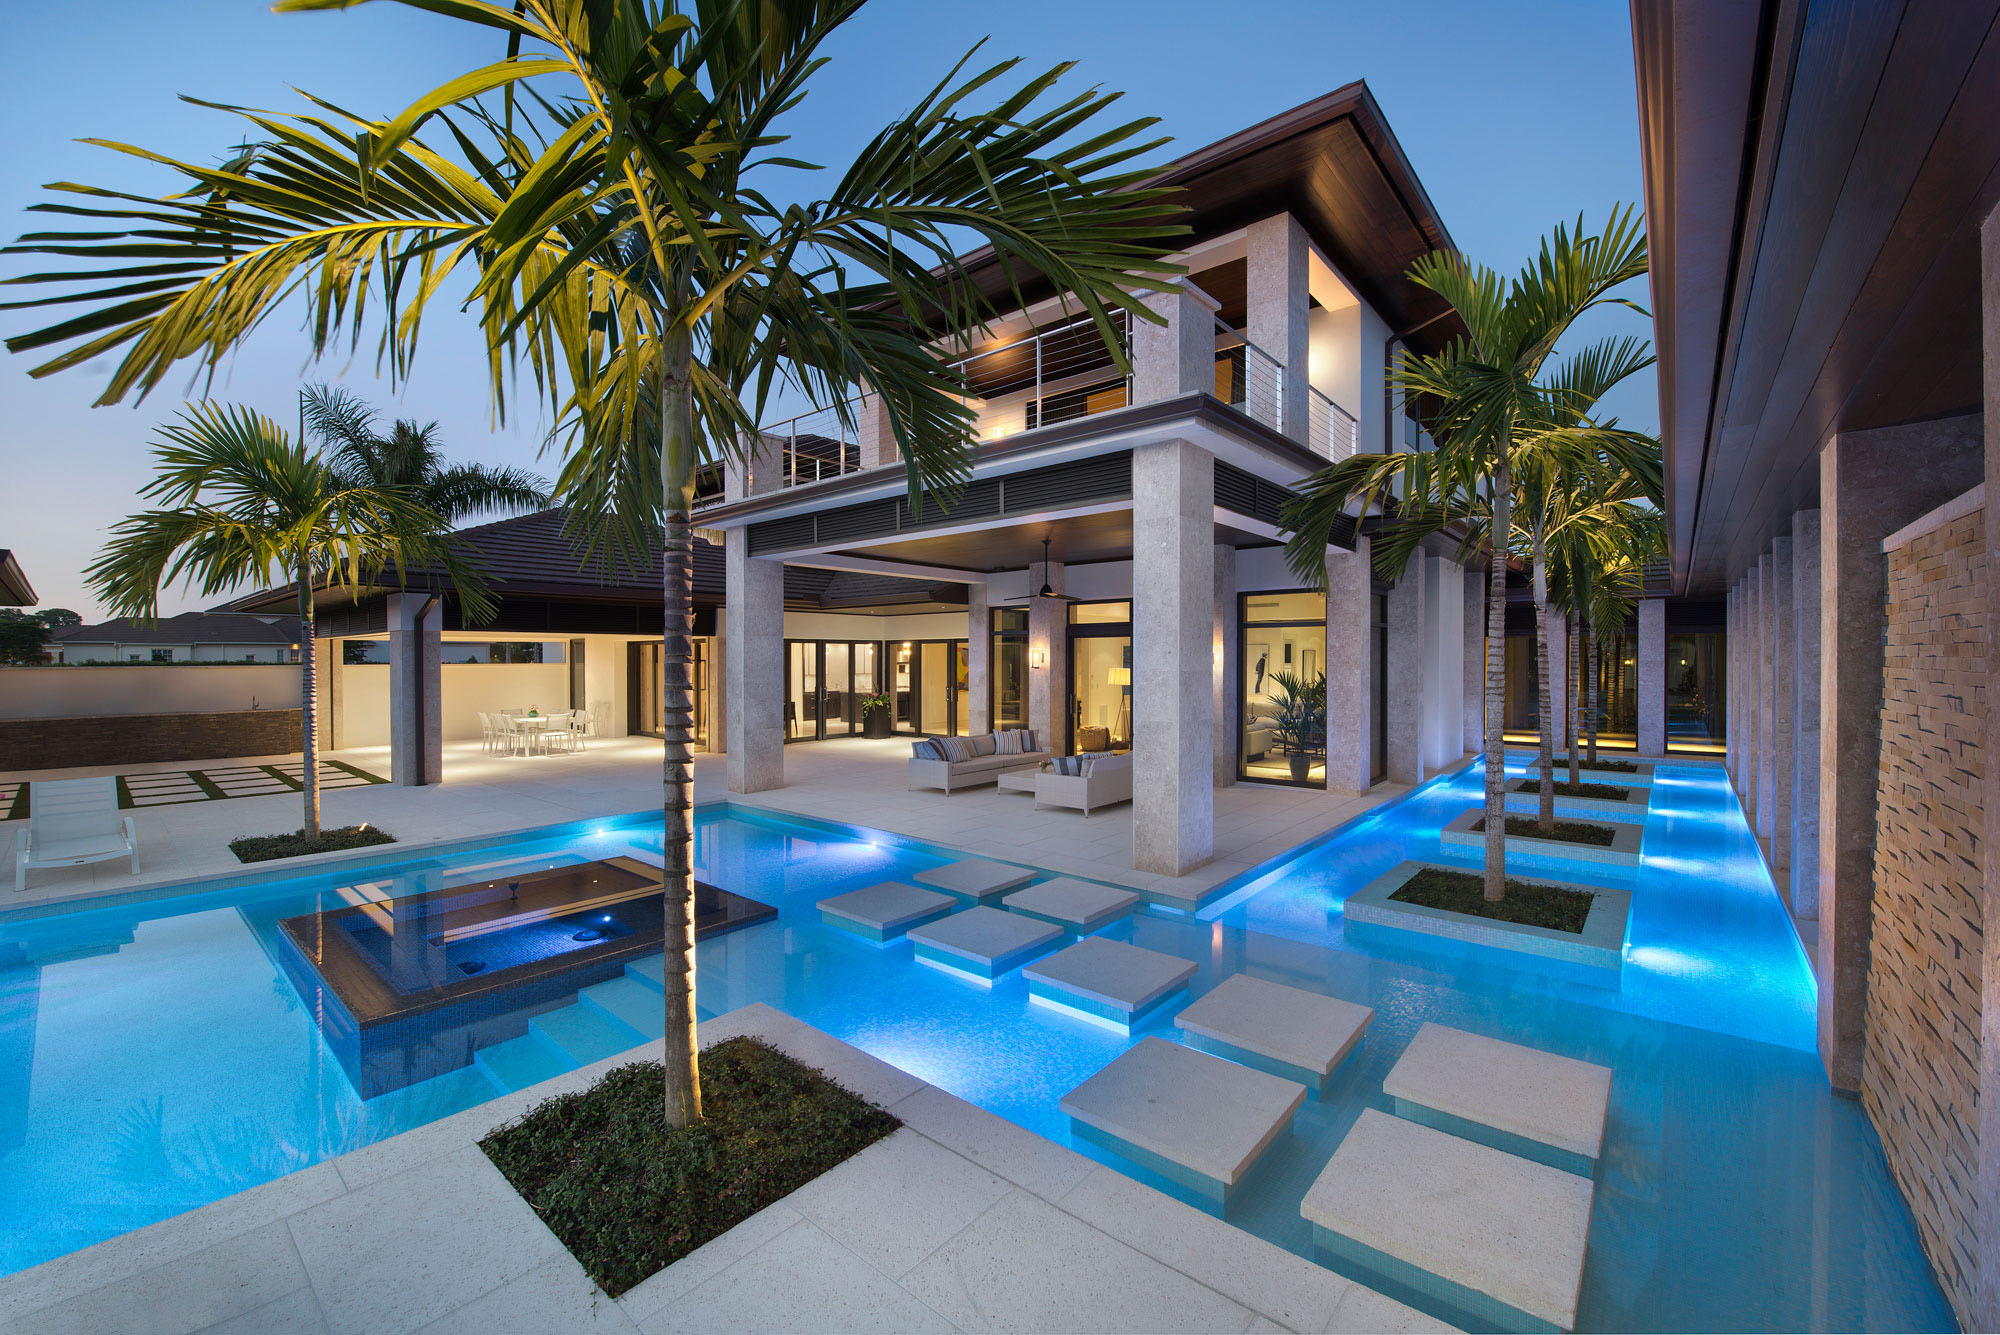 Custom dream home in florida with elegant swimming pool Create dream home